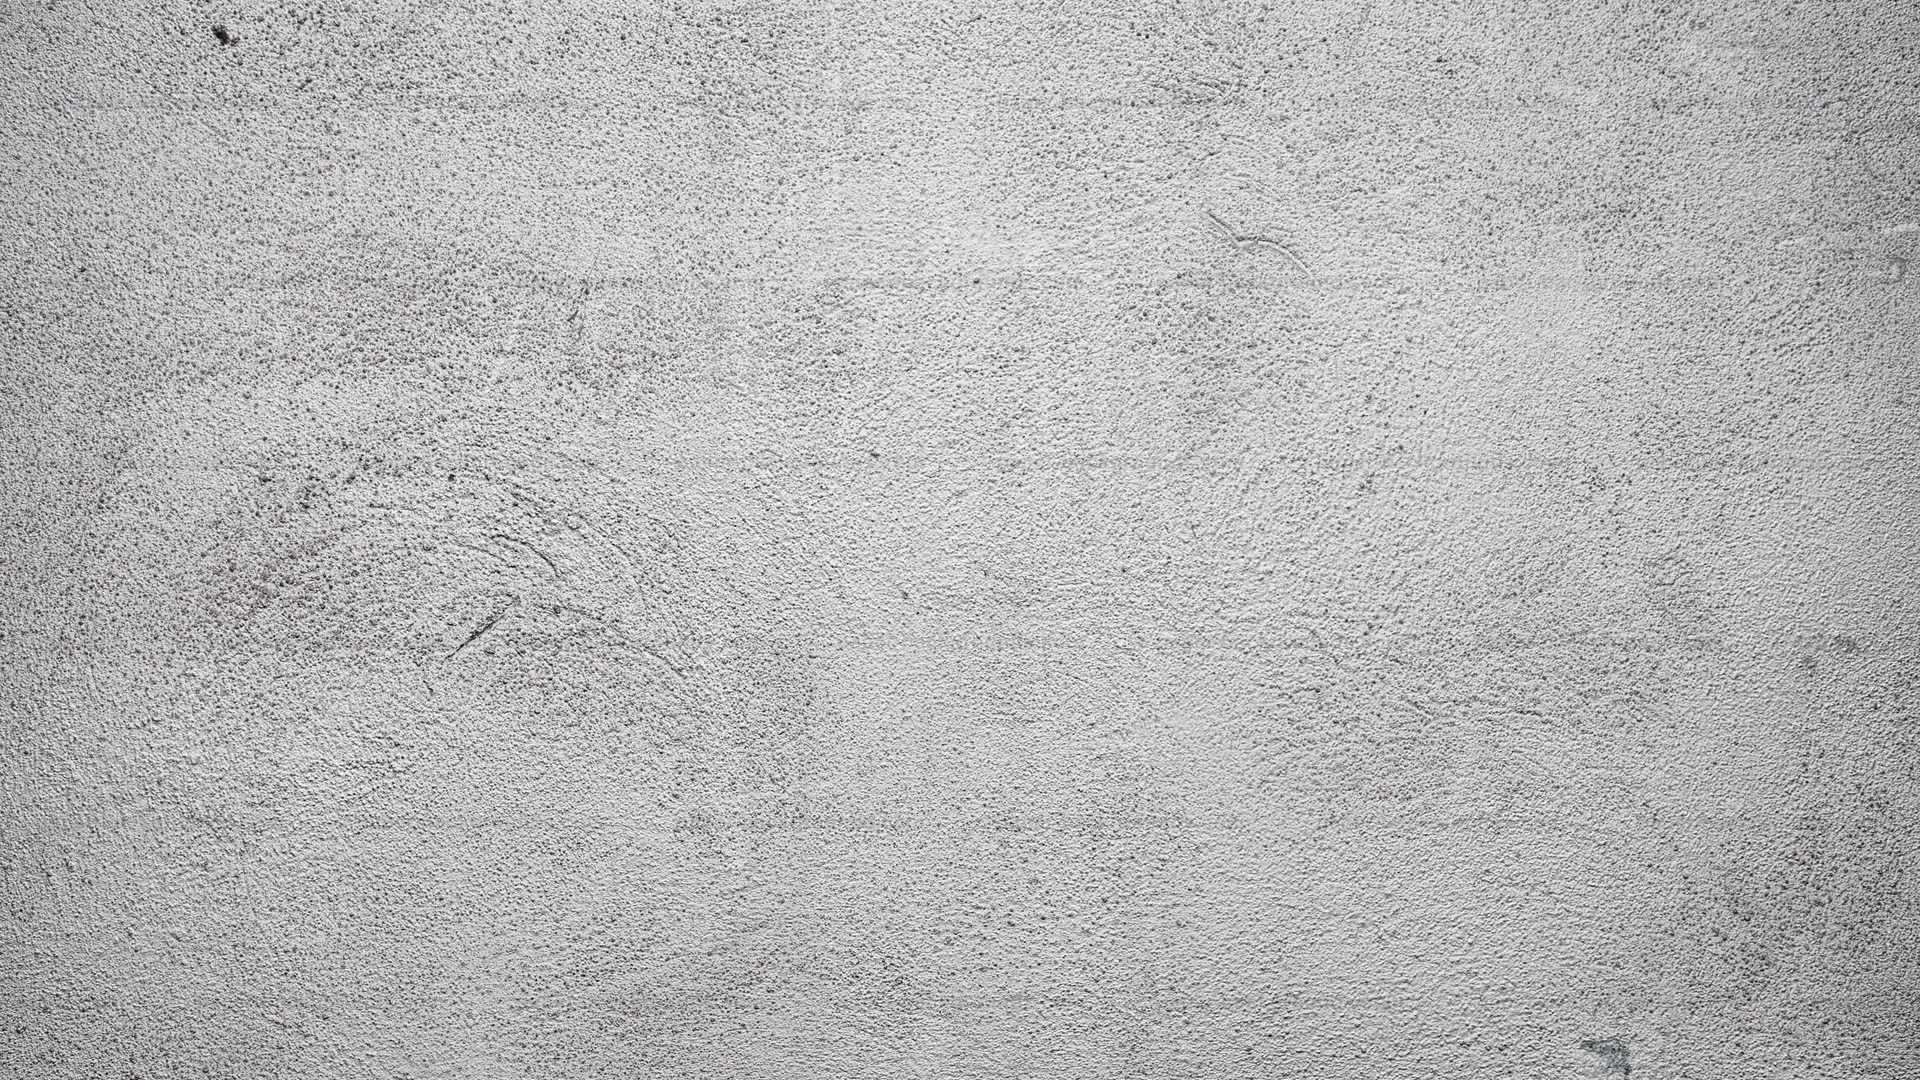 Concrete Wall Background High resolutio 1920x1080